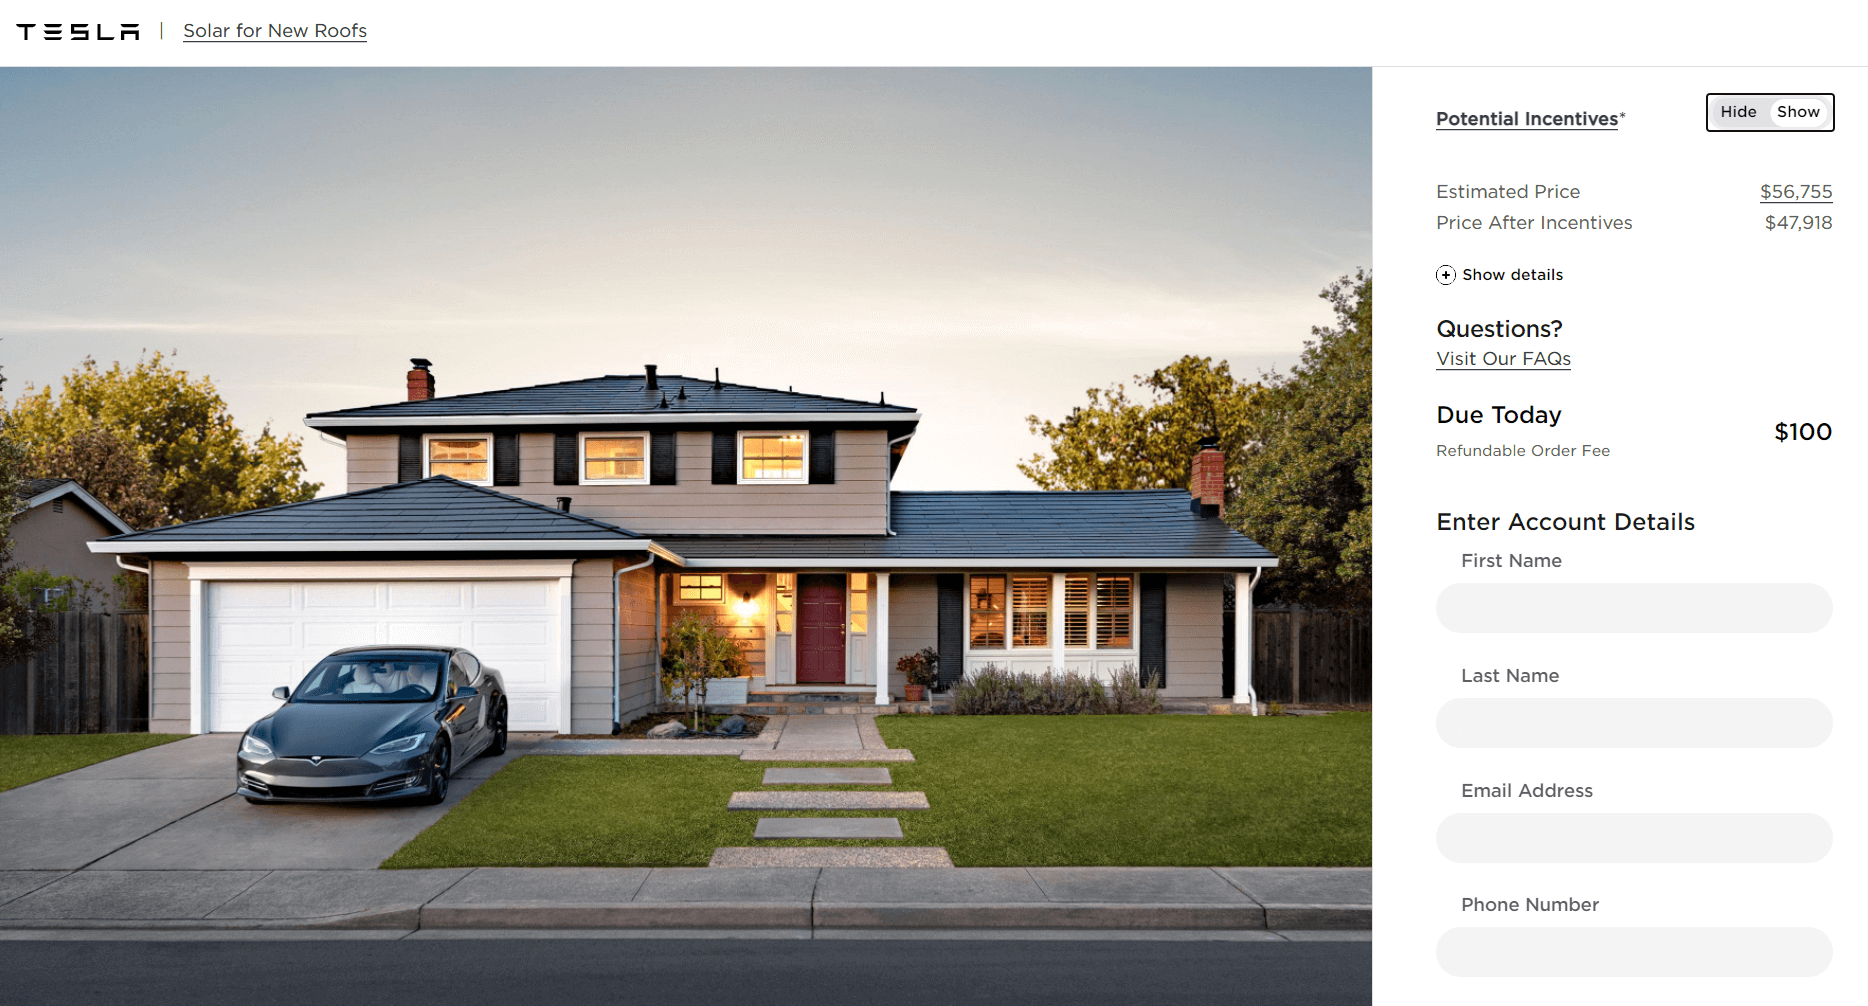 Cost of 8kw Tesla solar roof estimated from Tesla's solar design portal